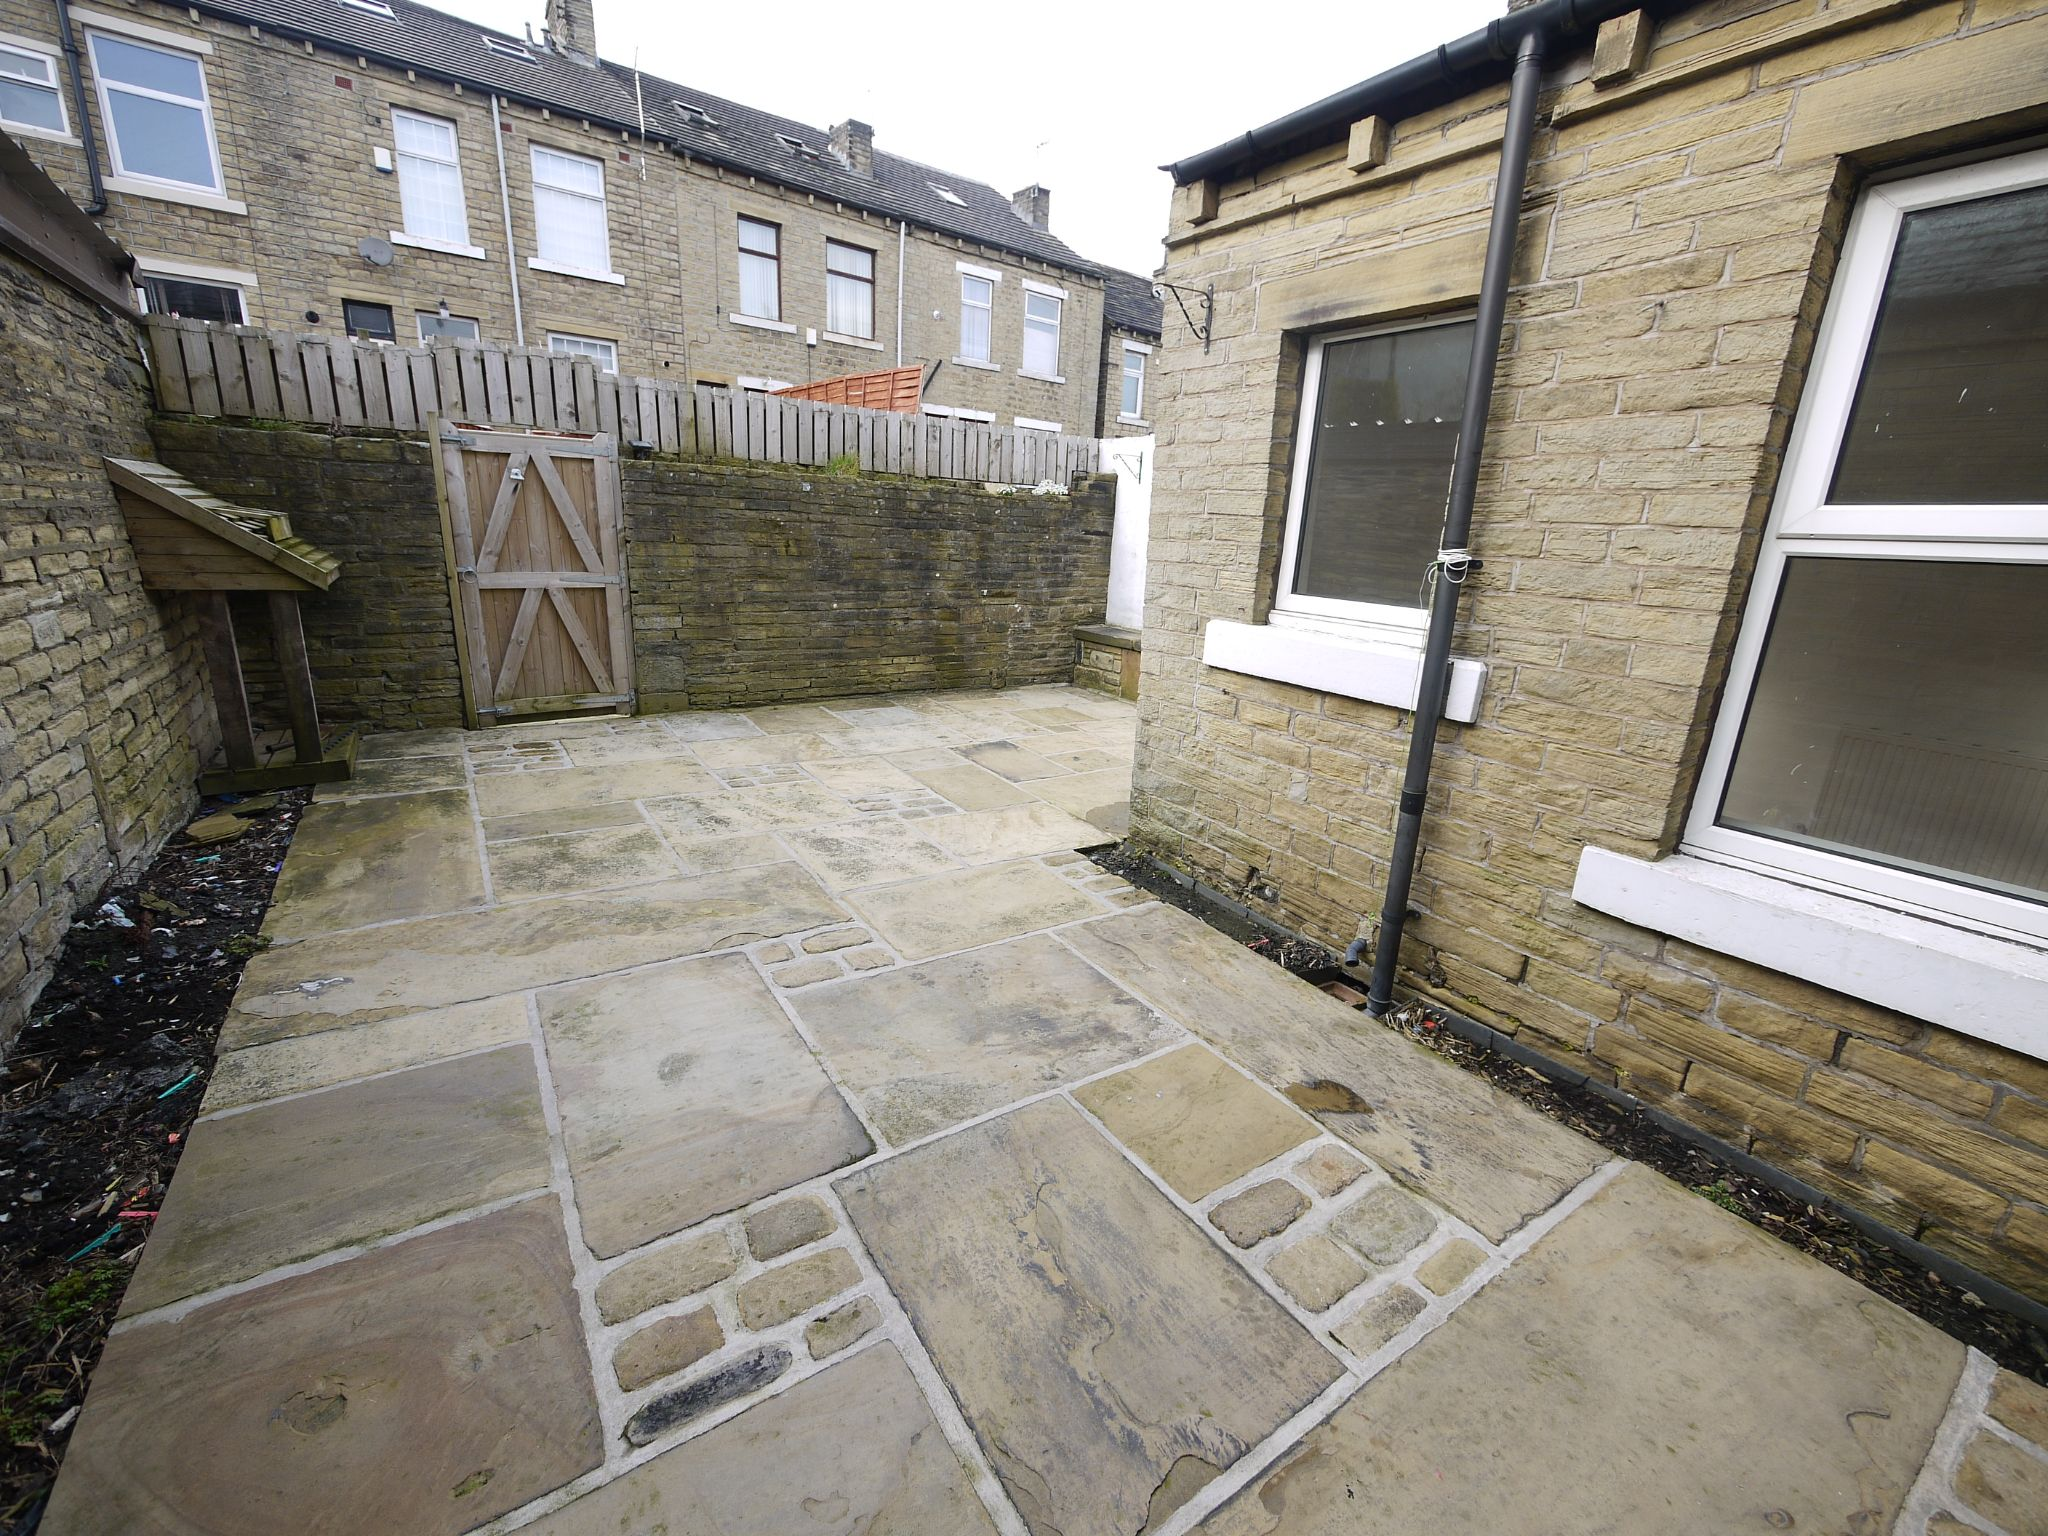 2 bedroom ground floor flat/apartment To Let in Halifax - Exterior.